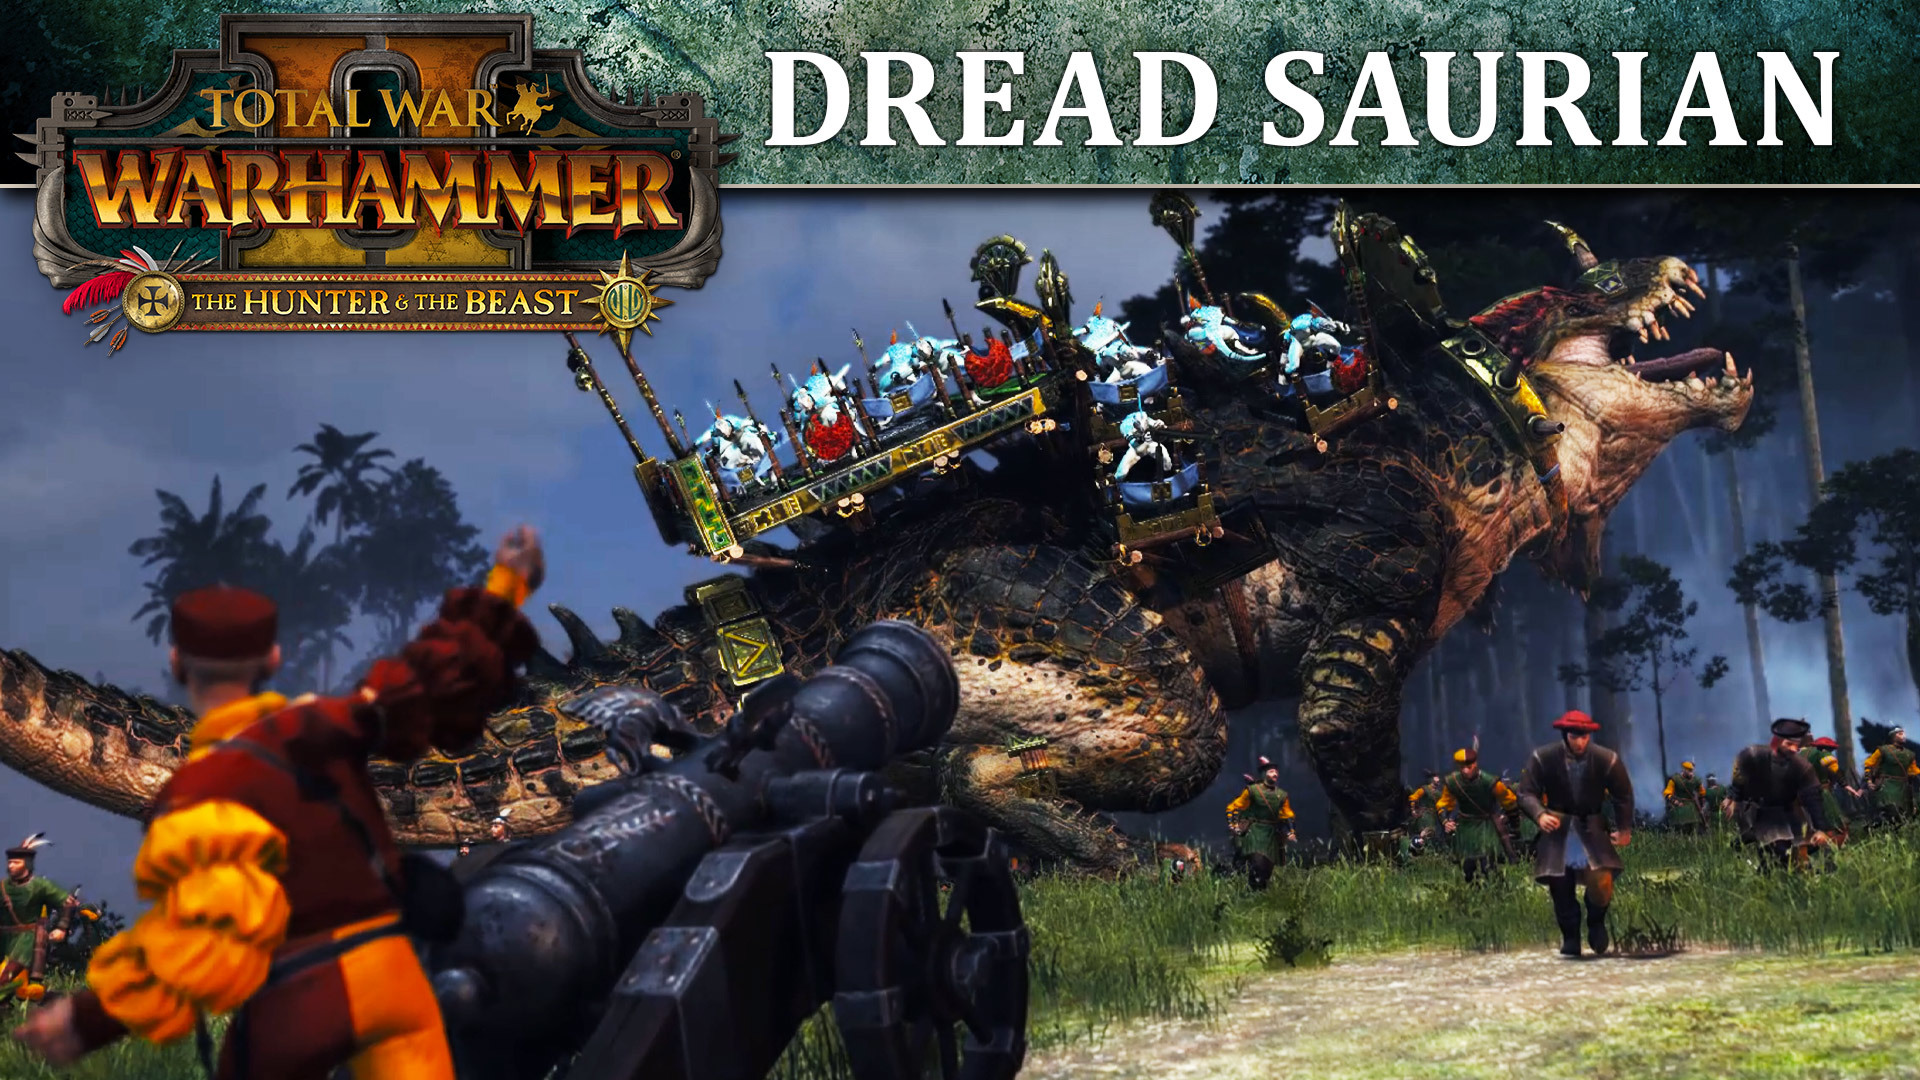 Sep 16 2019 The Hunter The Beast Beta Total War Warhammer Ii Ca James A Beta Update For The Hunter The Beast Is Now Live The Main Update Is That Based On Community Feedback We Ve Reverted The Change To Ports To What They Were Prior To Warhammer 2 clan angrund livestream. steam